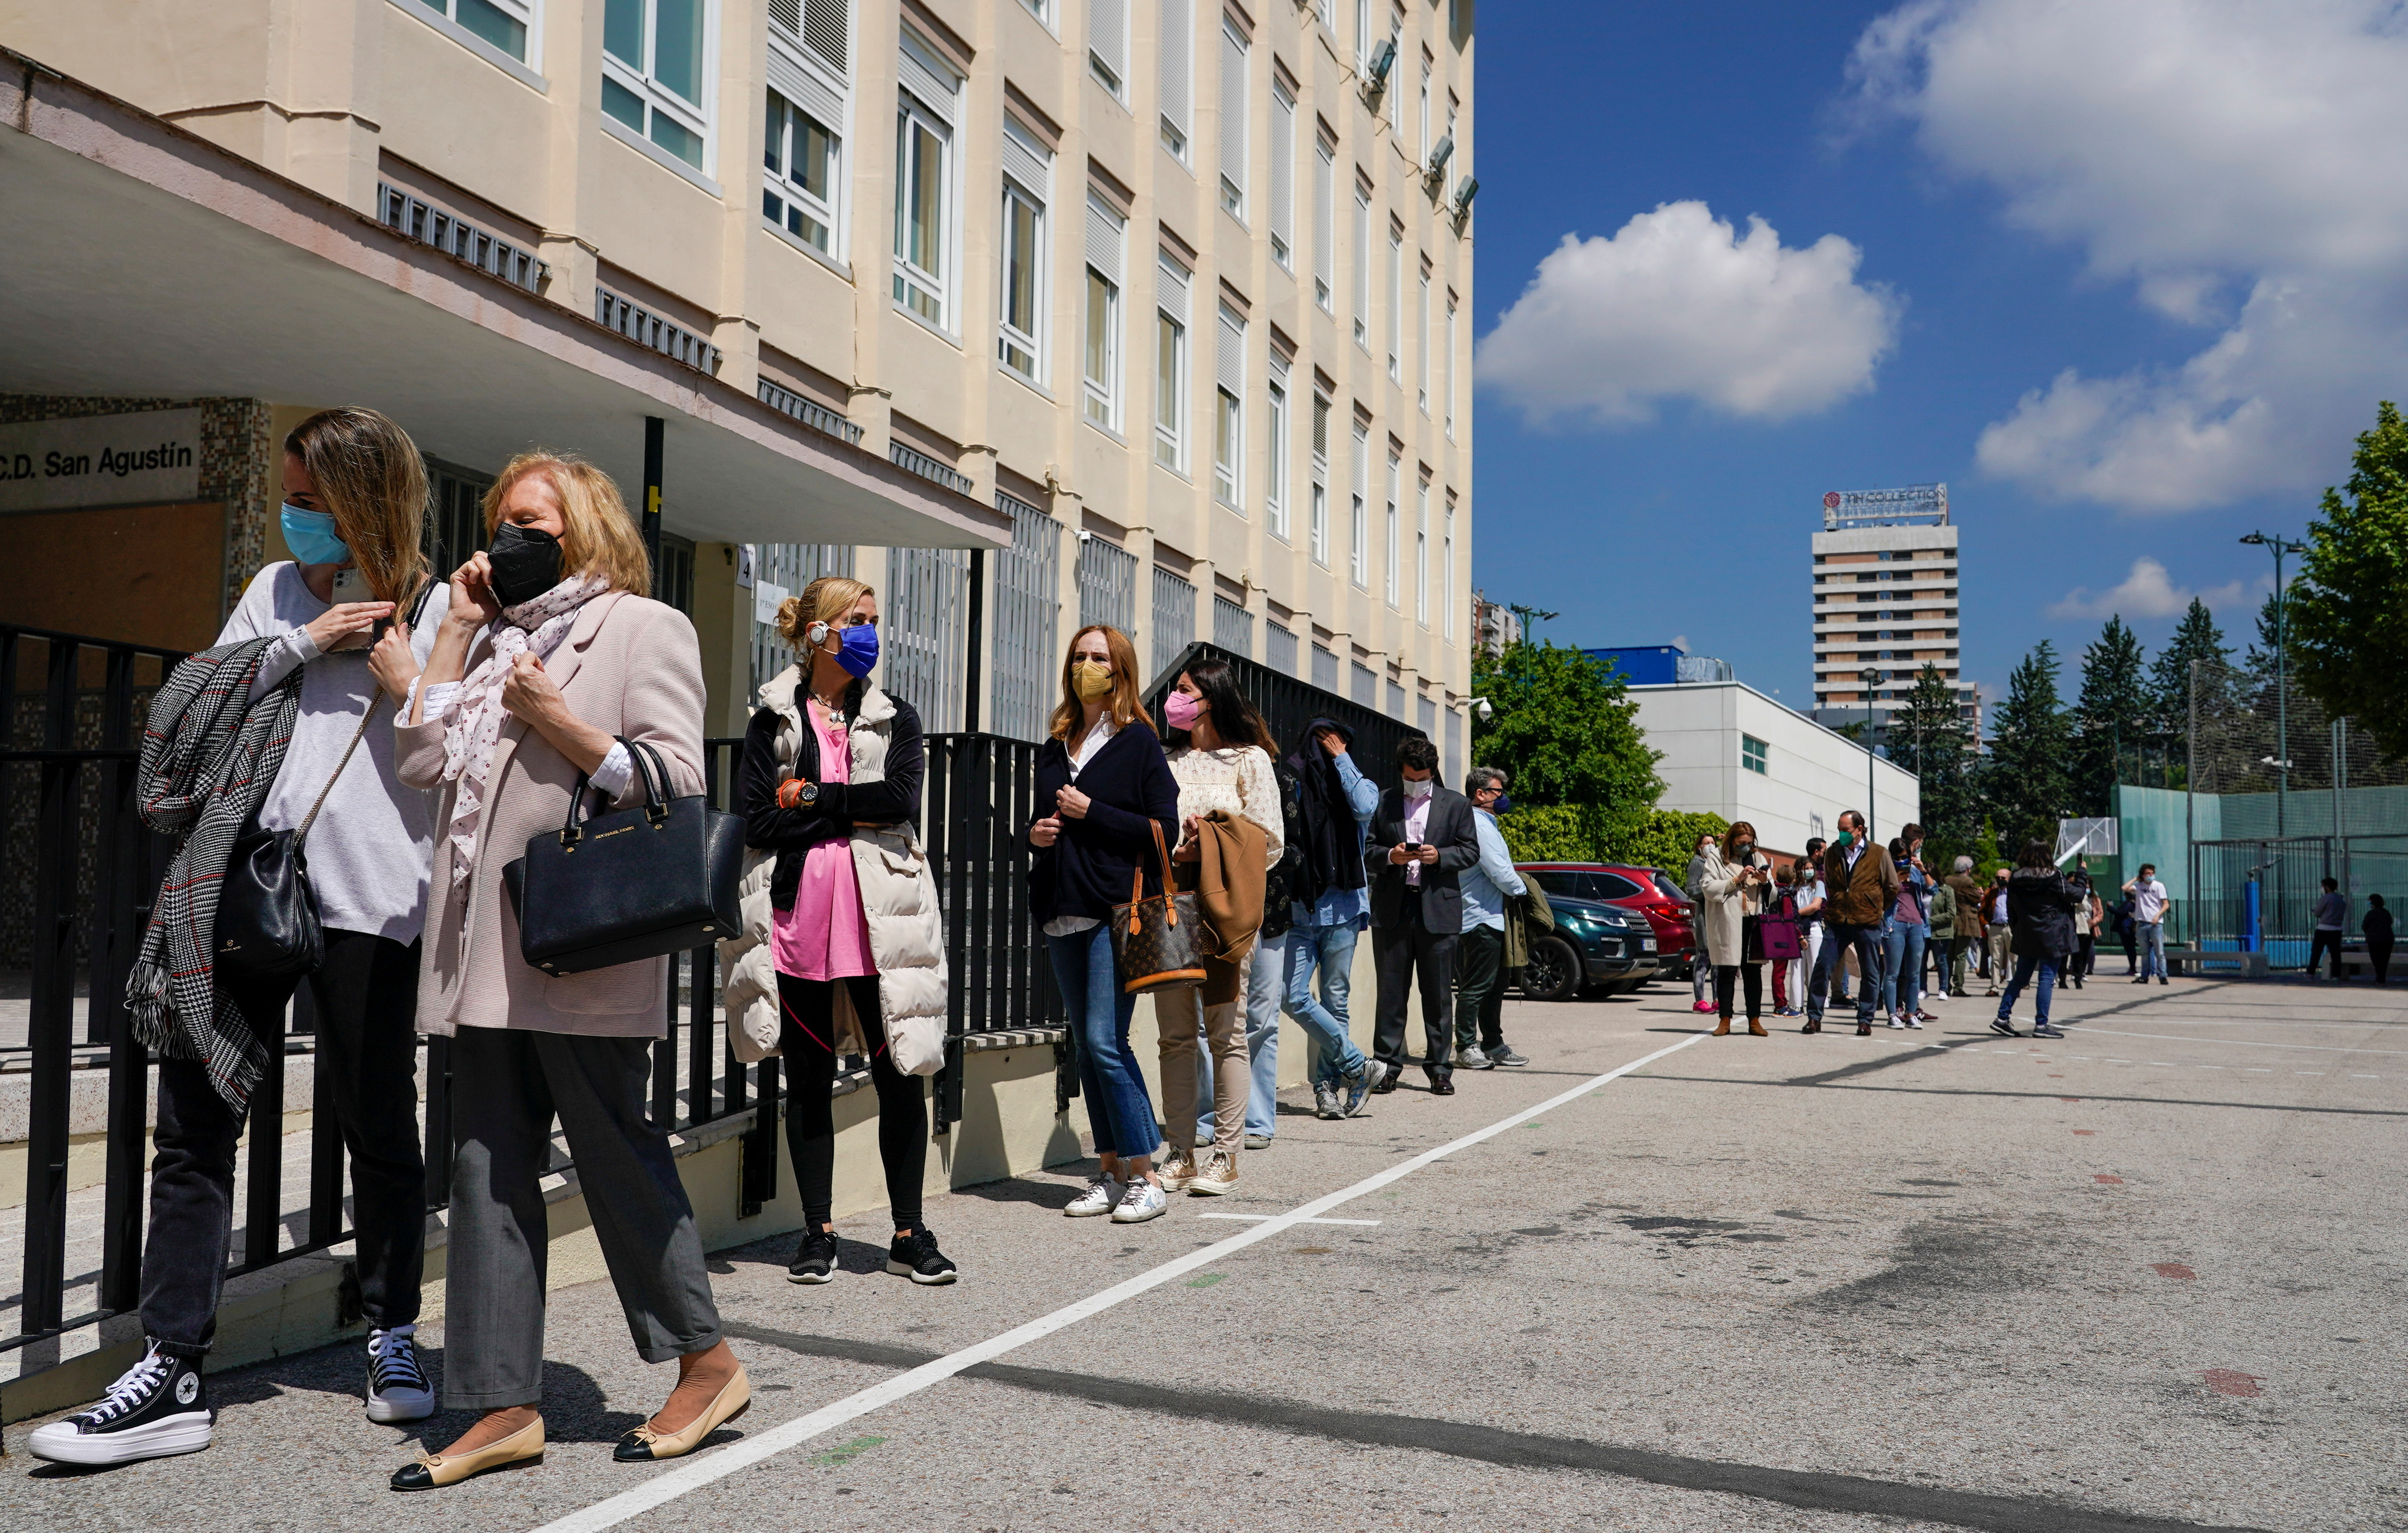 Voters, wearing protective face masks and keeping social distance, queue outside a polling station during Madrid's Regional elections, in Madrid, Spain, May 4, 2021. REUTERS/Juan Medina - RC2Y8N9W3GB5